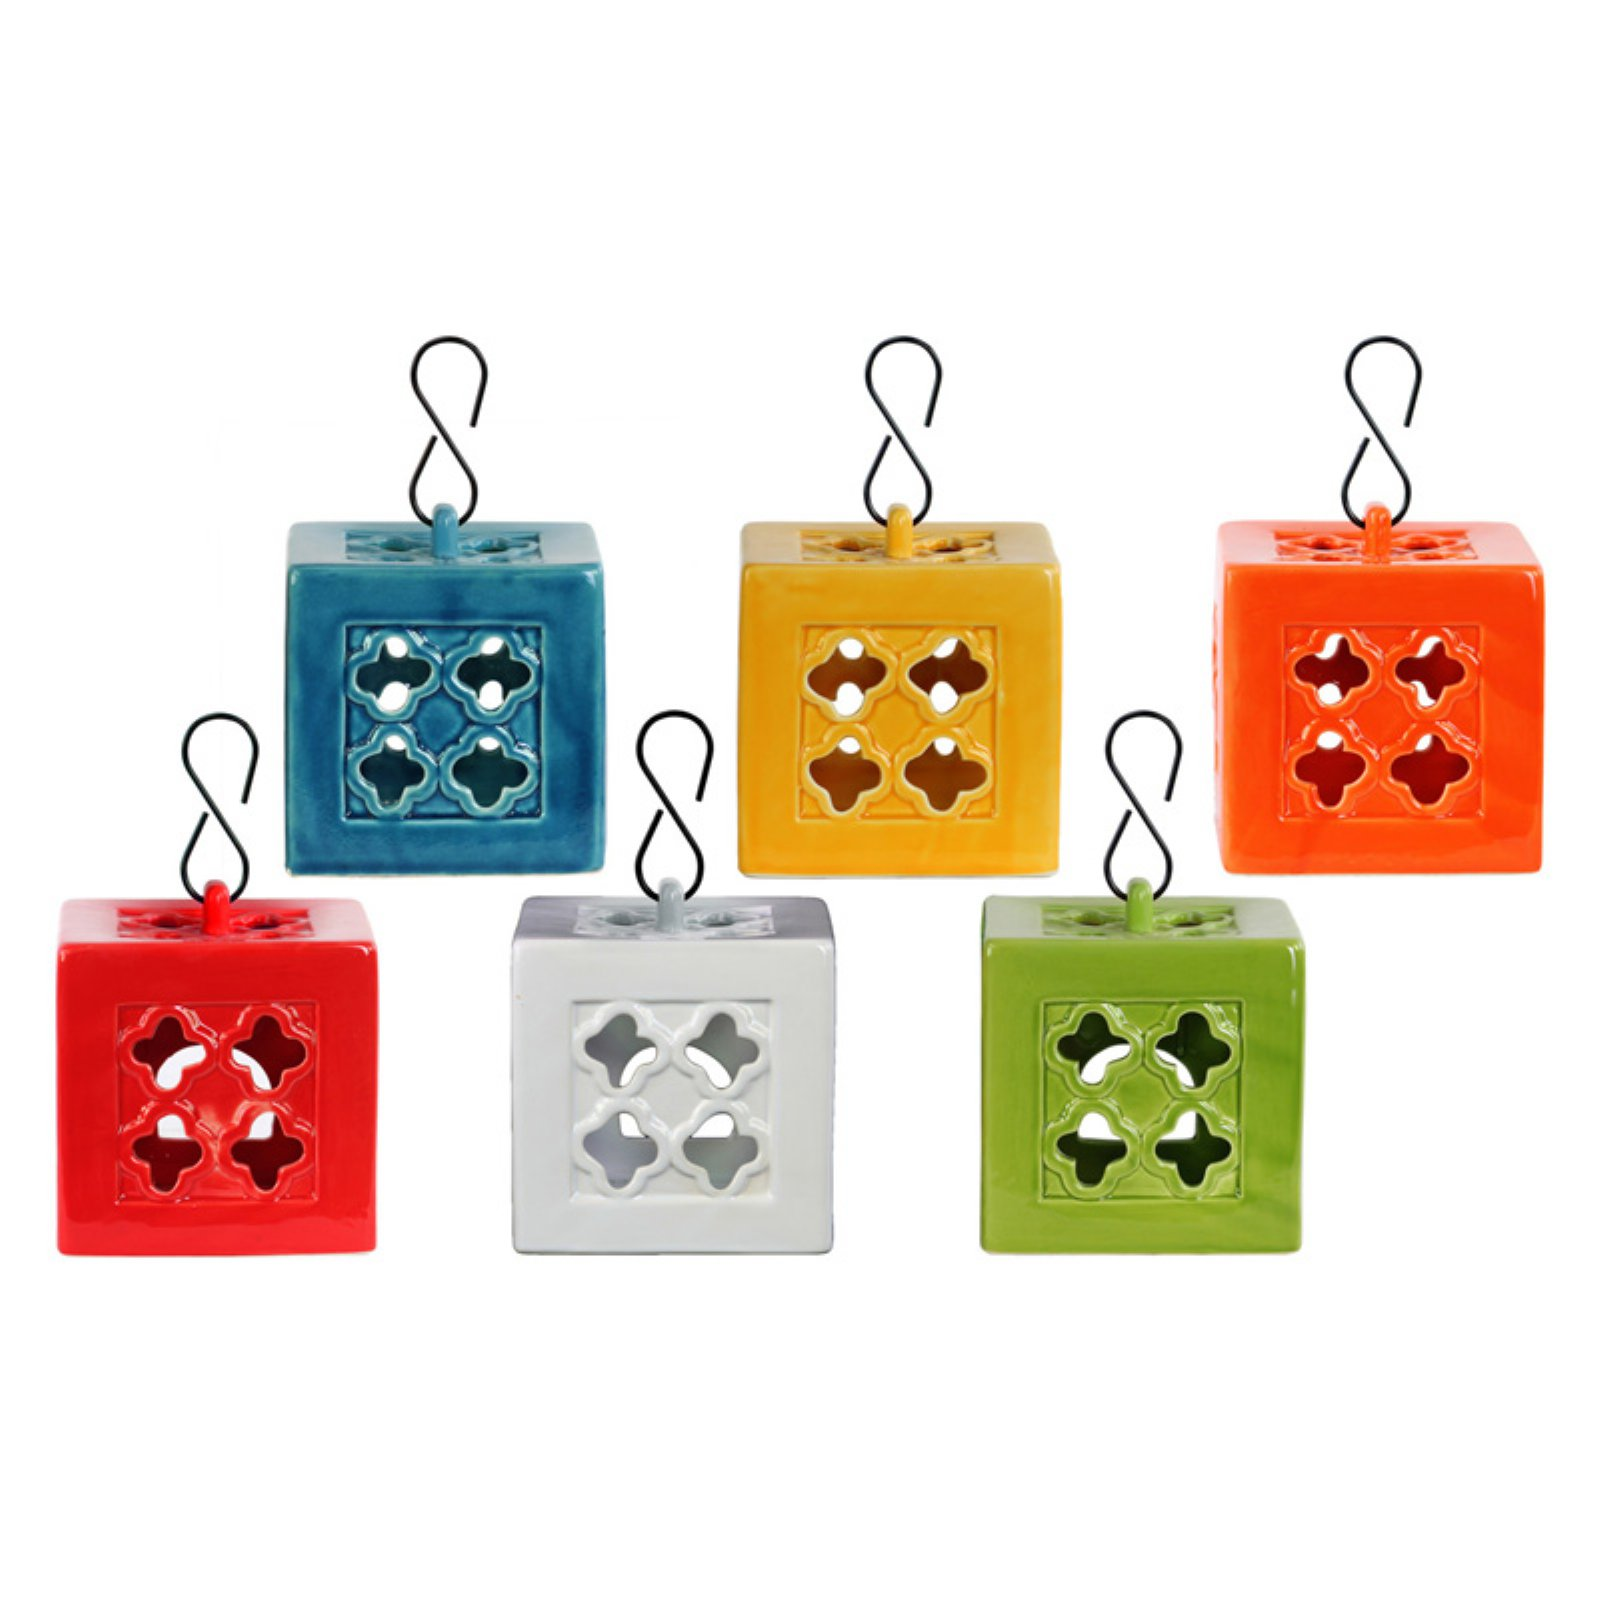 Urban Trends Collection: Ceramic Lantern, Gloss Finish, White, Red, Orange, Yellow, Green